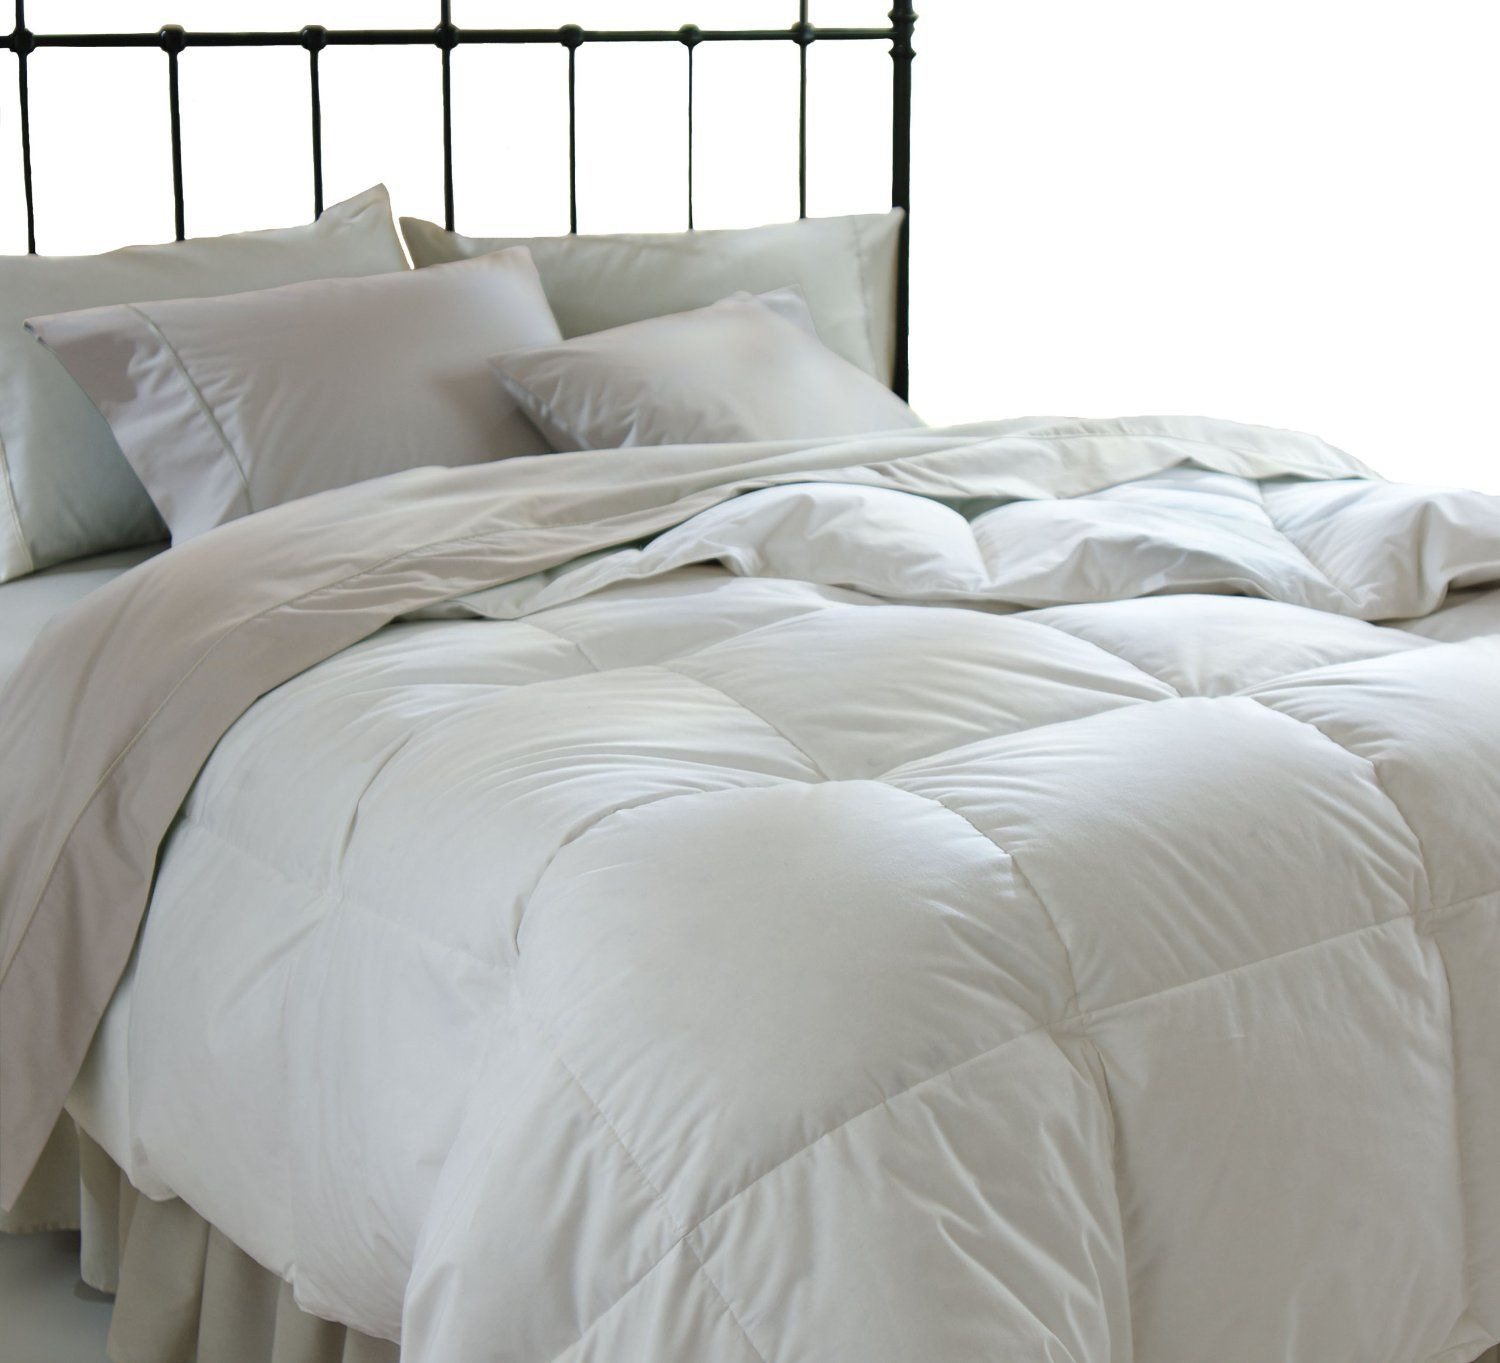 sleep comforter charming twin mattresses sleepnumber bedding ideas size bed number